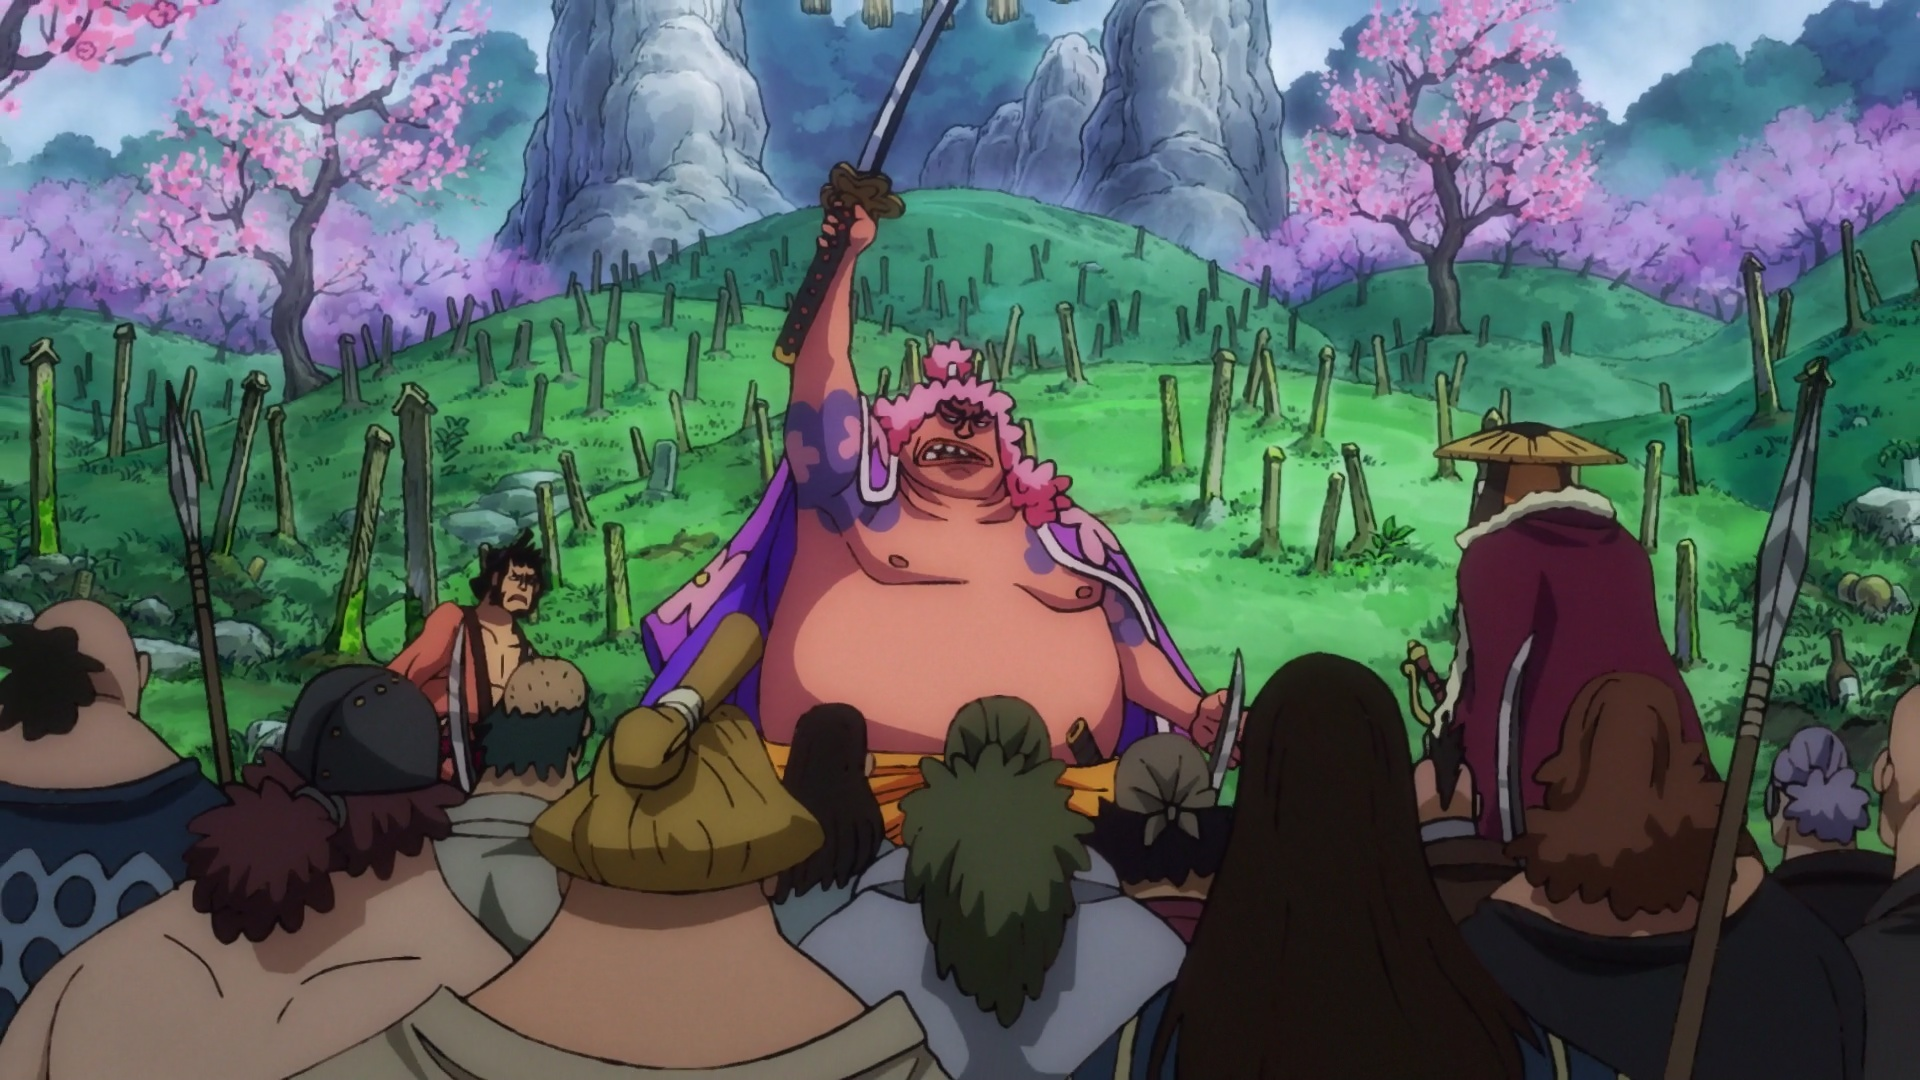 ONE PIECE 950 VOSTFR SD/HD/HD 10BITS/FHD News background